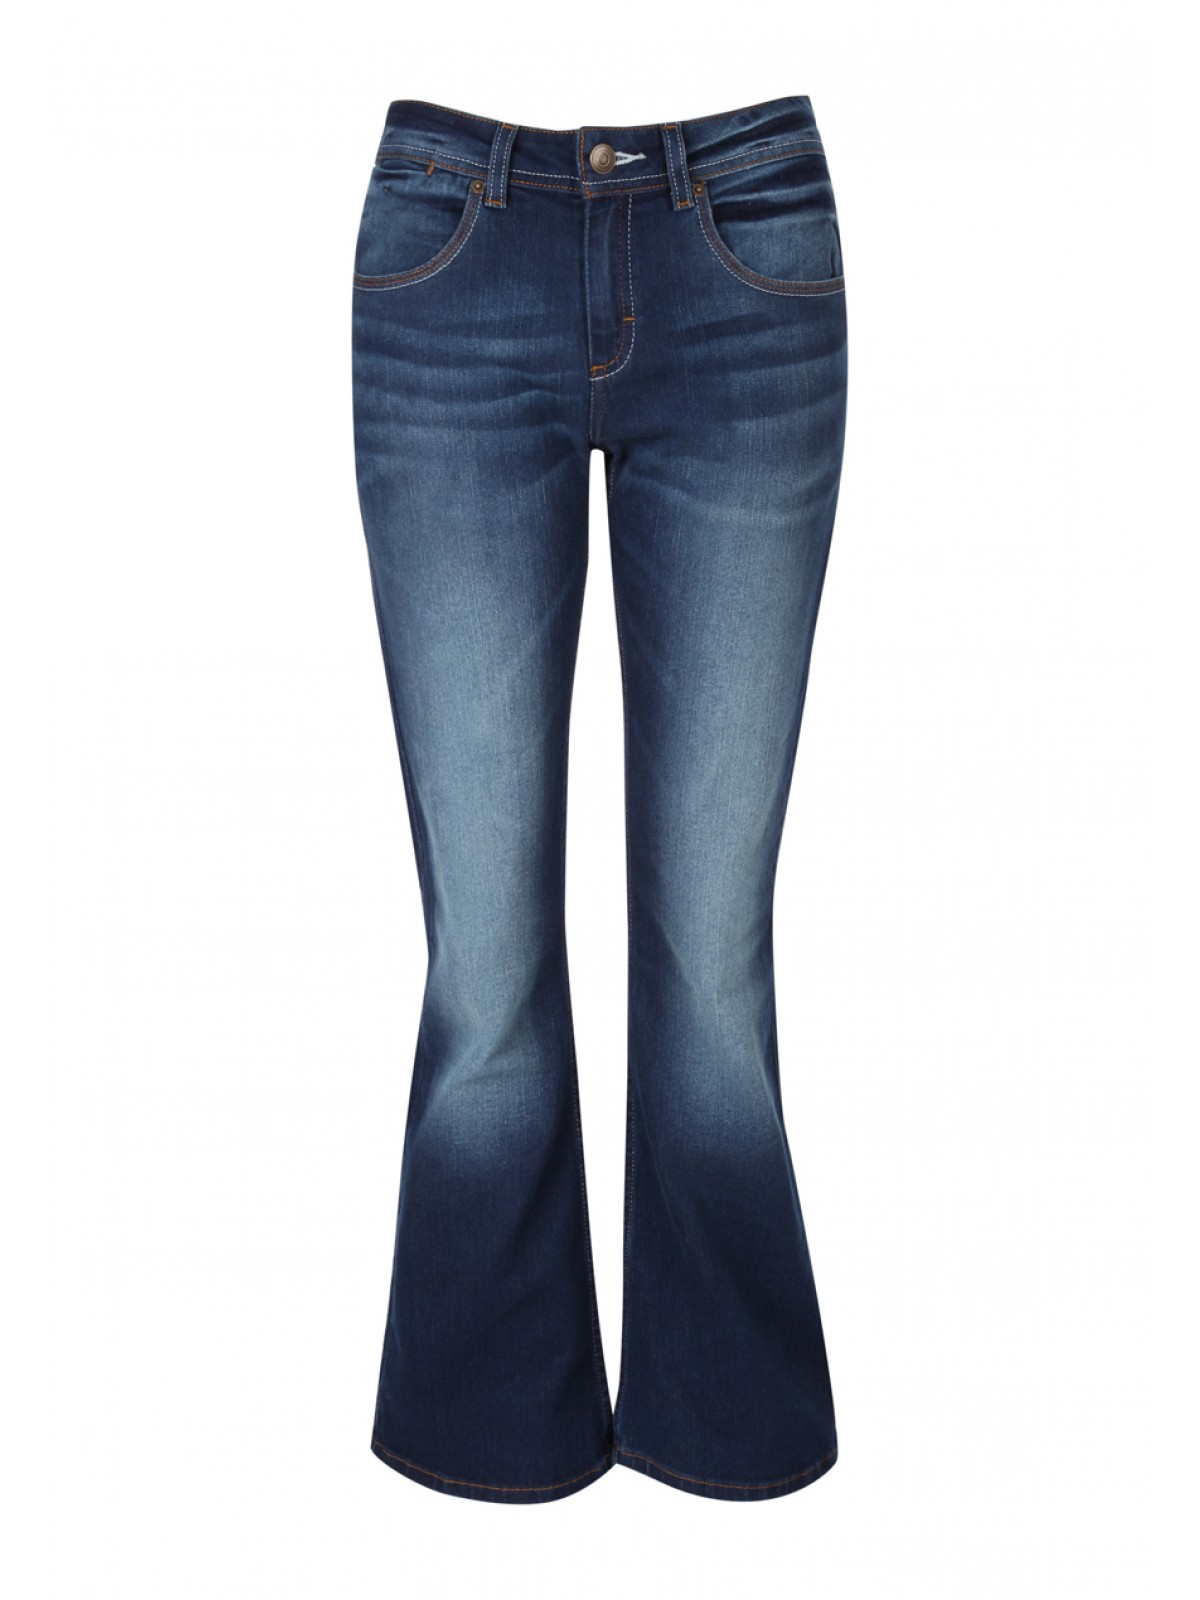 ba5d3a36b5c5a Dark Blue Boot Cut Jeans. Women Jeans Boot cut